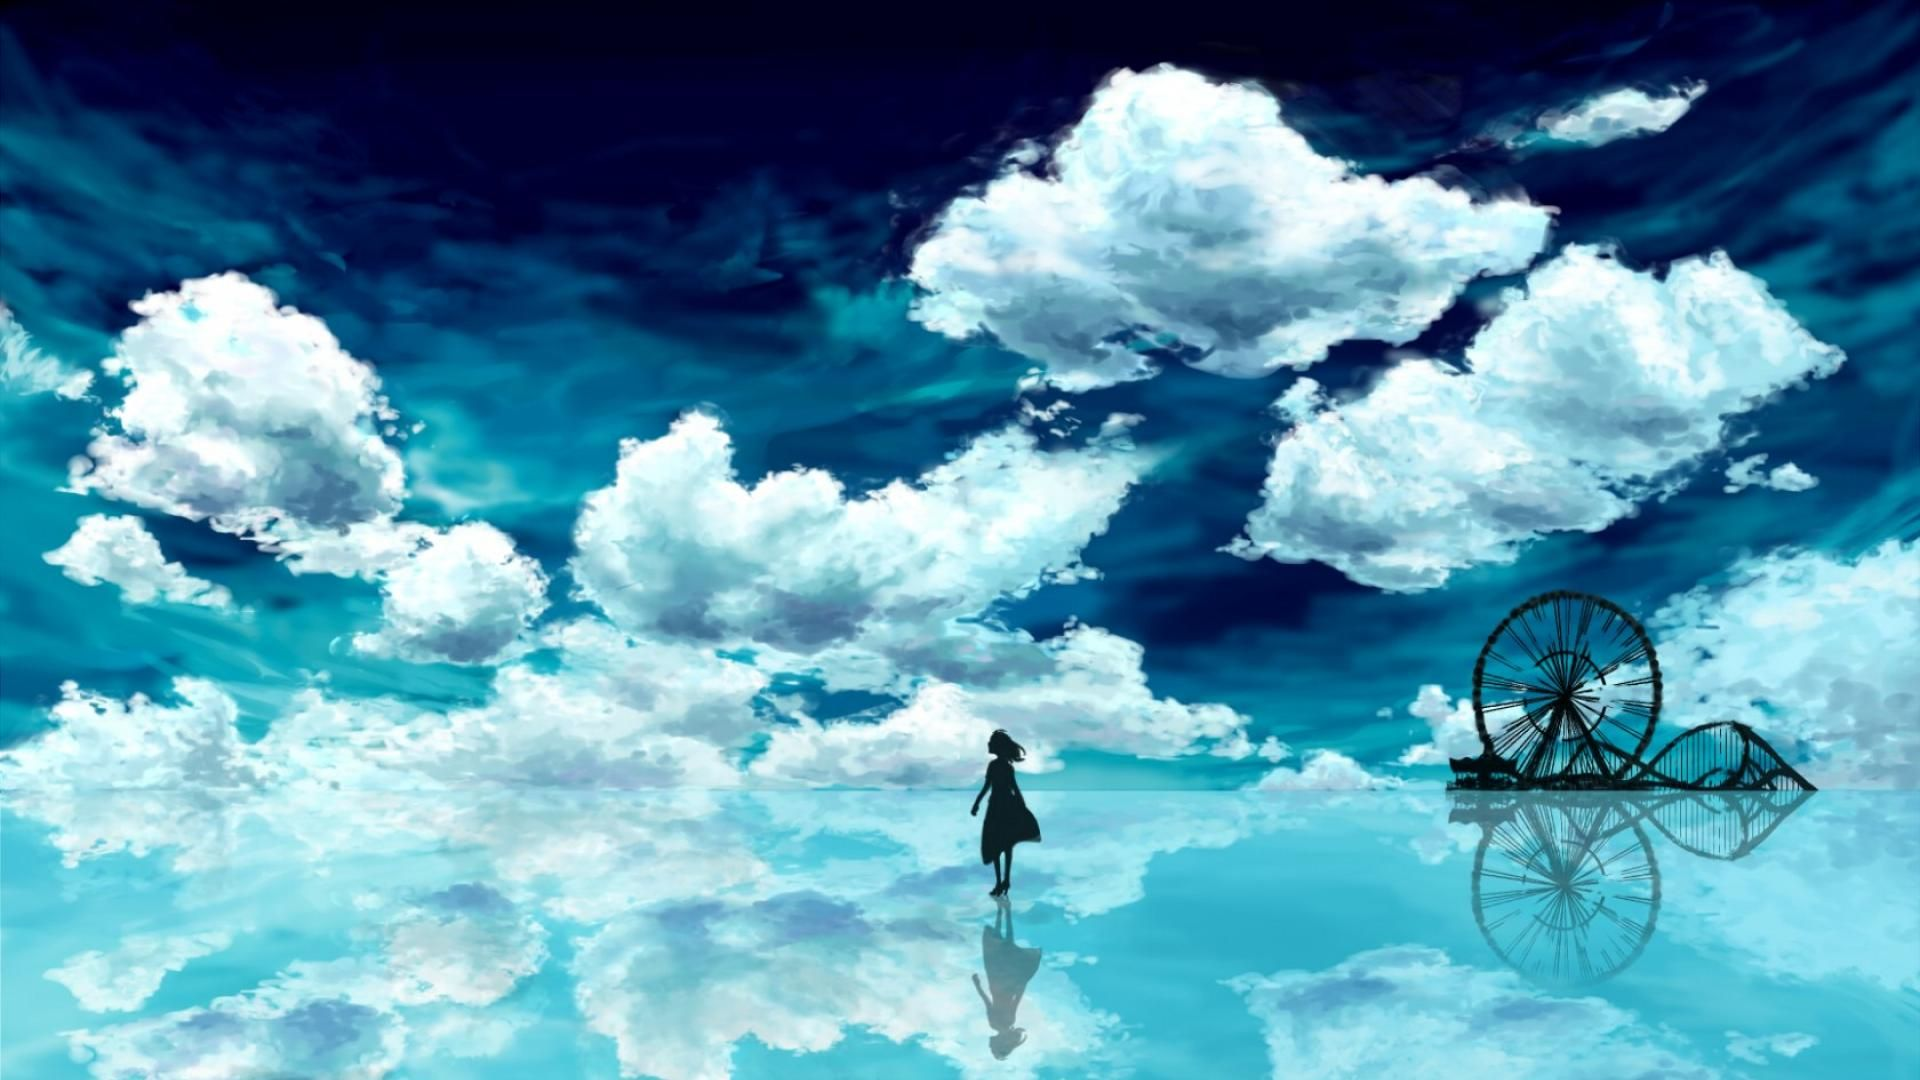 More Discrete Anime Wallpapers The More You Know Post Anime Scenery Wallpaper Anime Scenery Scenery Wallpaper